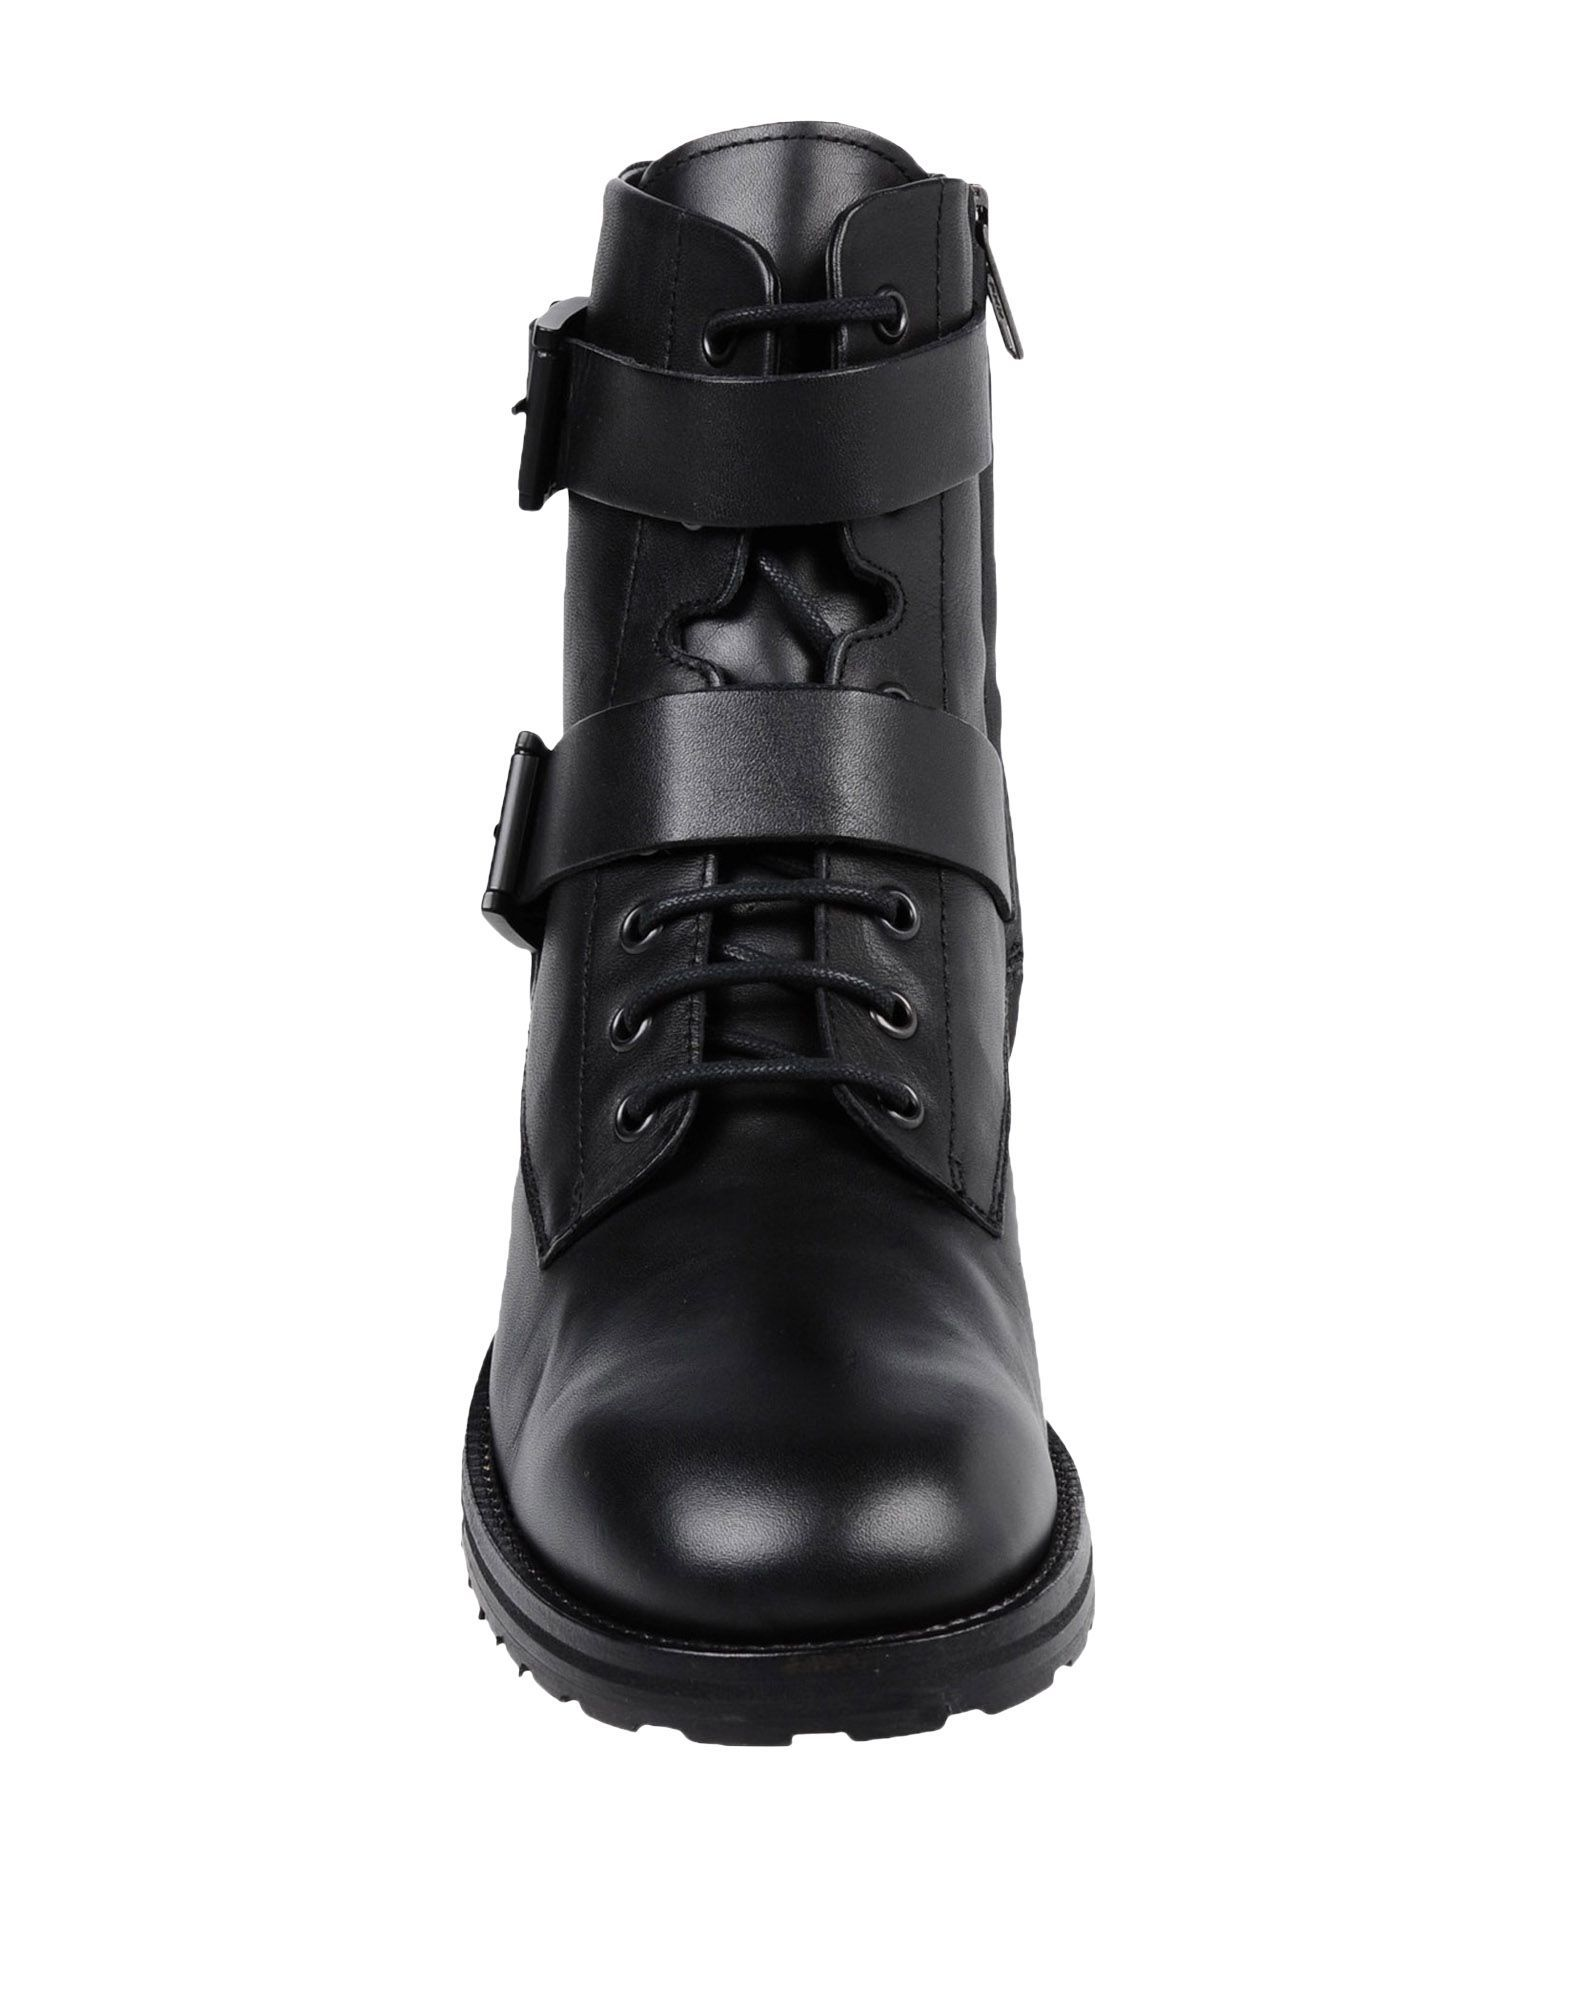 Lemare Black Leather Boots